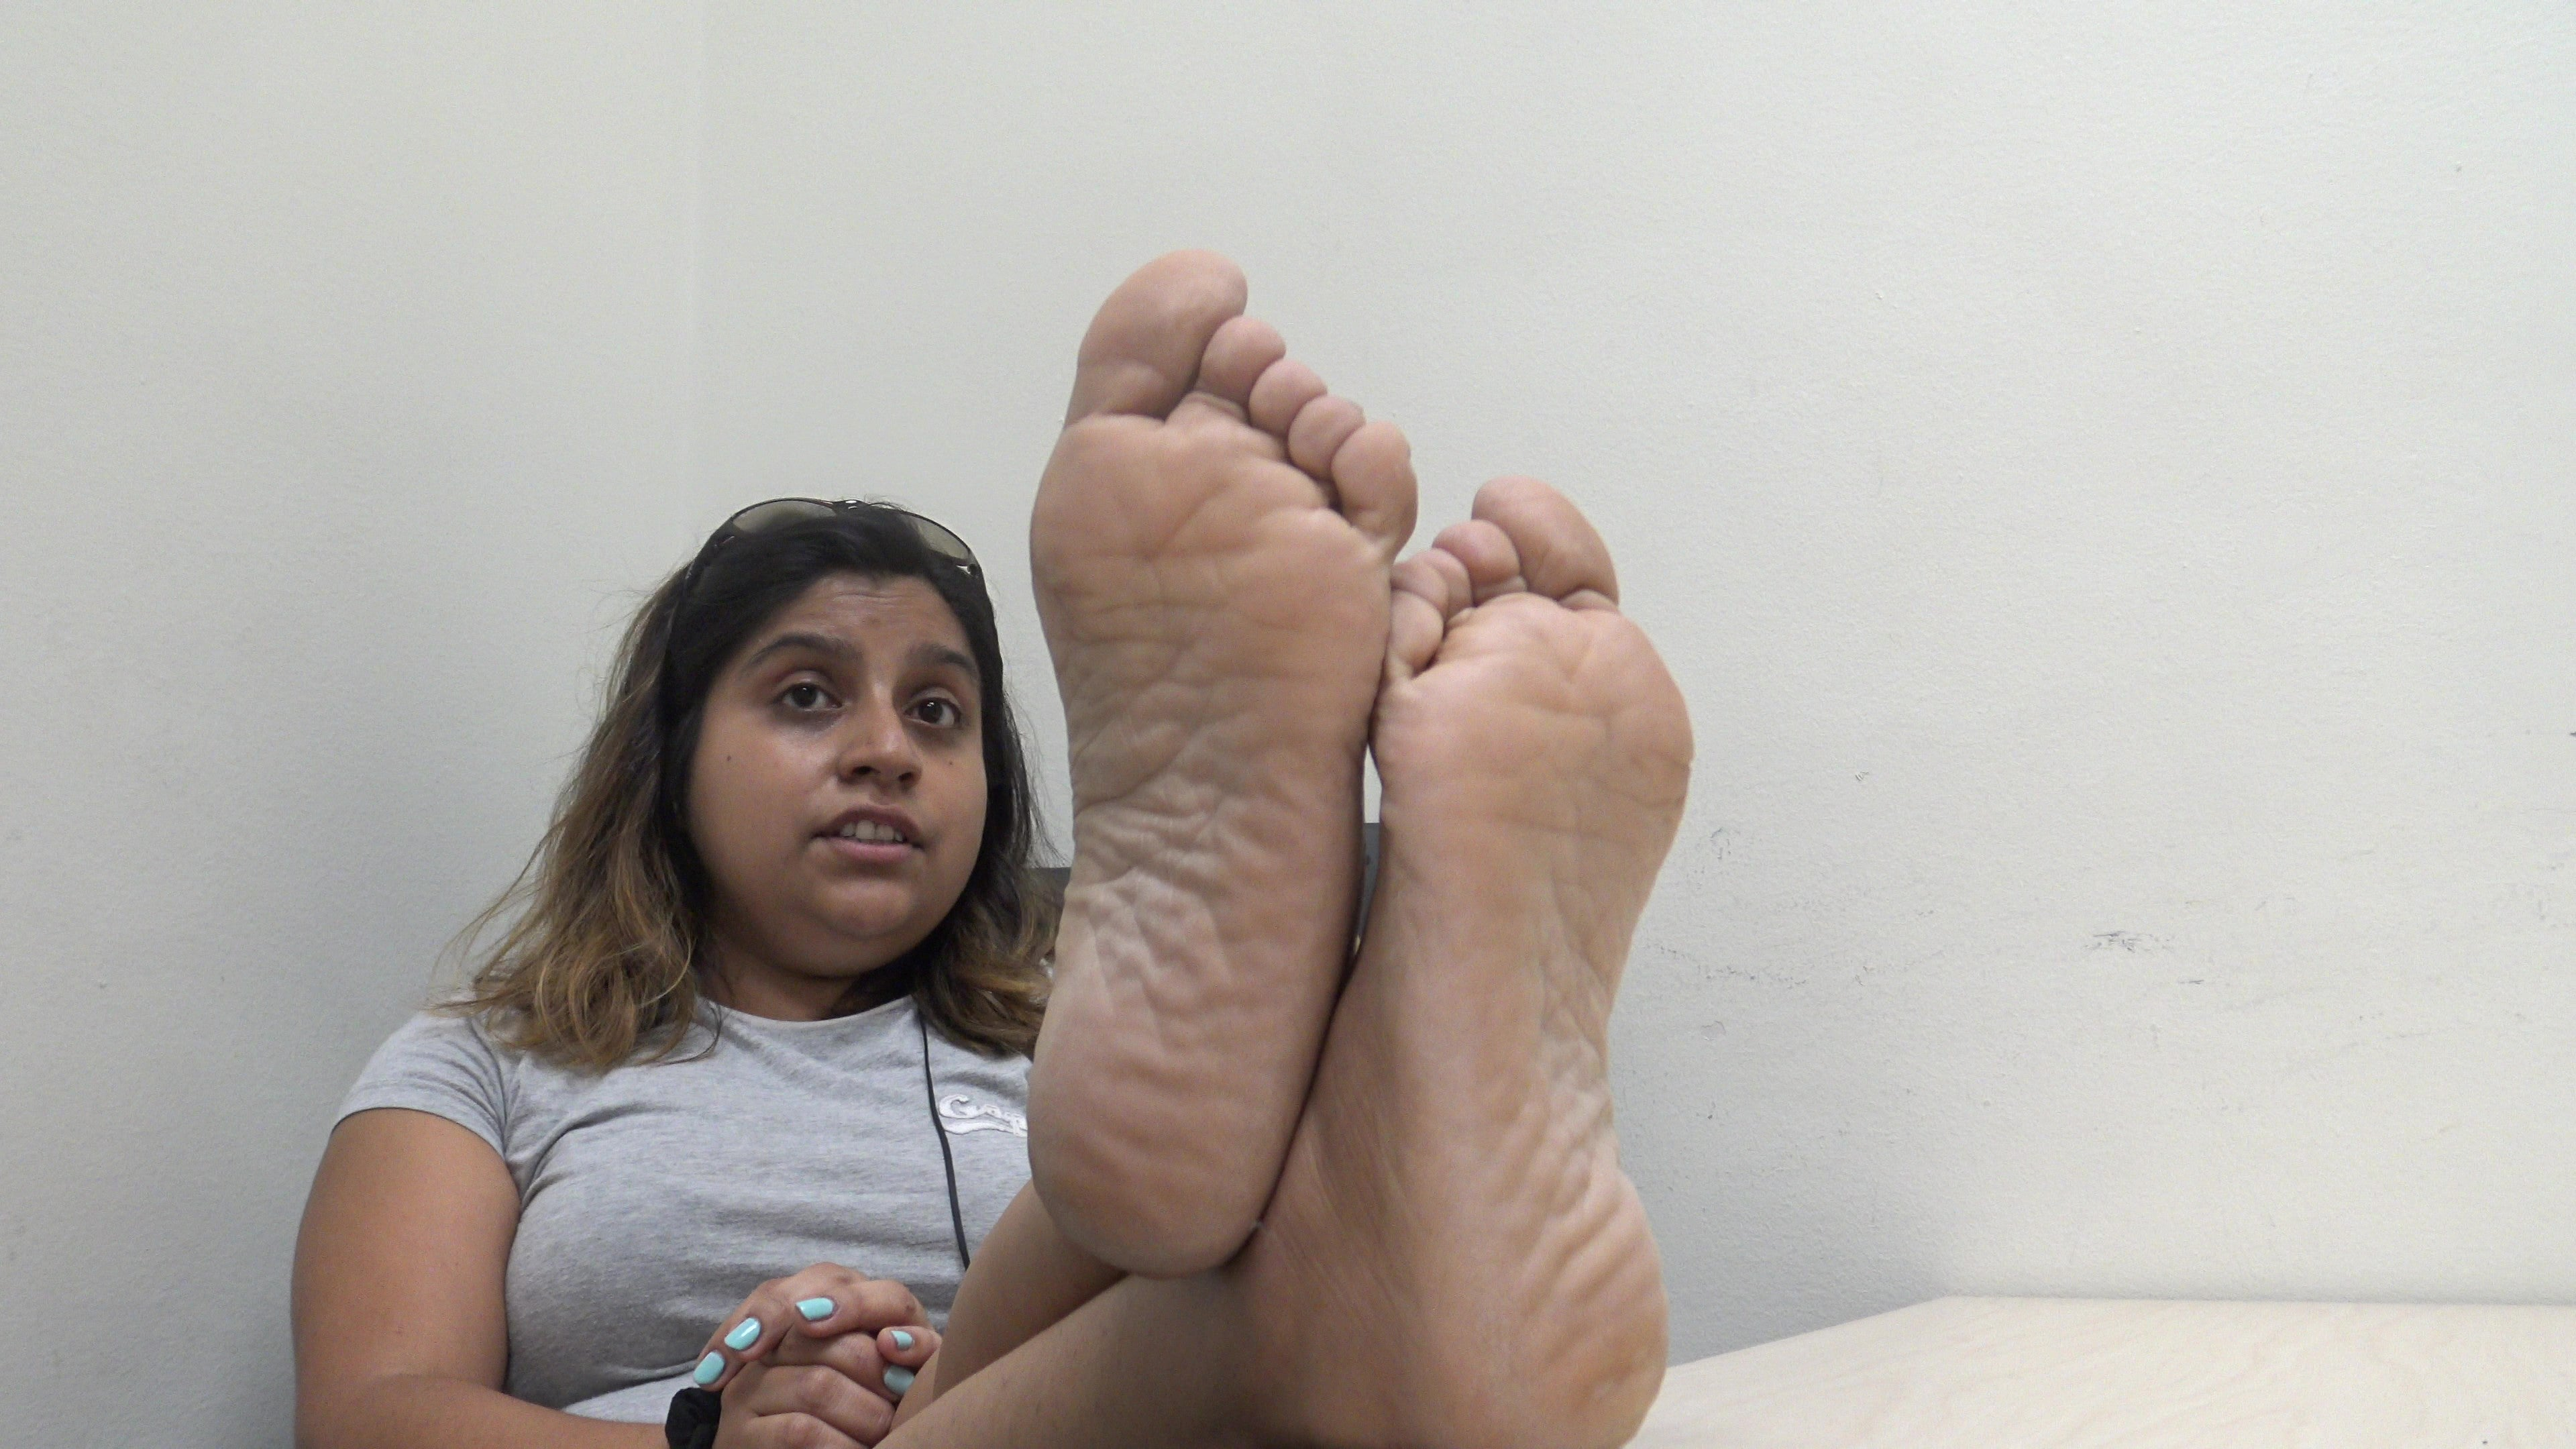 Marissa Latina Young Latina College girl feet and young girl feet Part 1